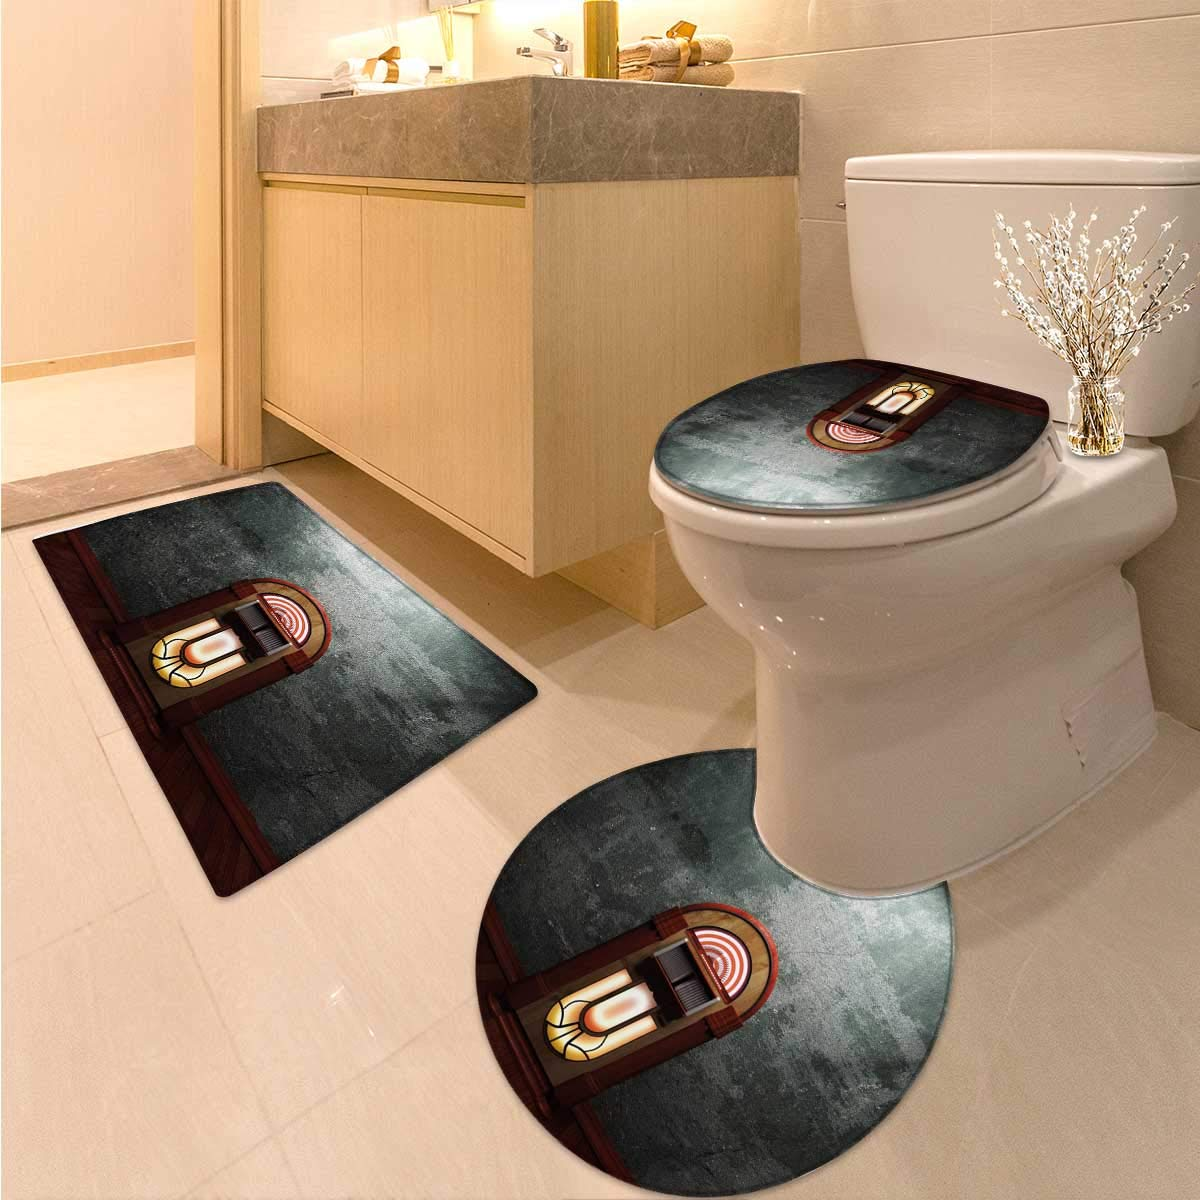 Anhuthree Jukebox Toilet Carpet Floor mat Set Scary Movie Theme Old Abandoned Home with Antique Old Music Box Image Non Slip Bath Shower Rug Petrol Green and Brown